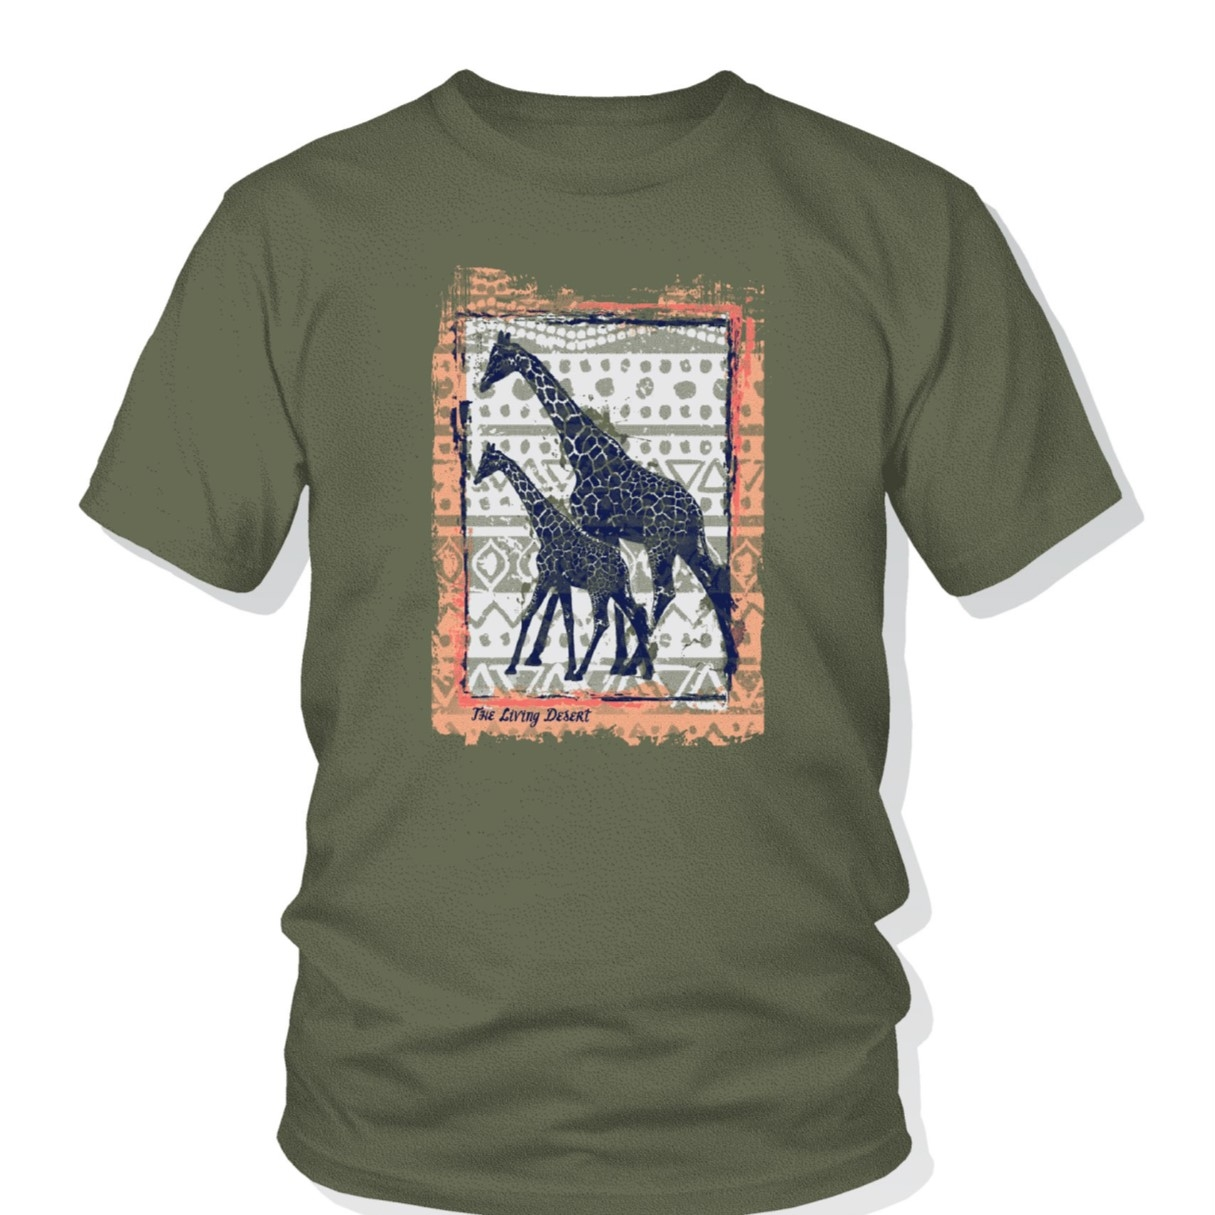 ADULT ADVENTURE GIRAFFE TEE